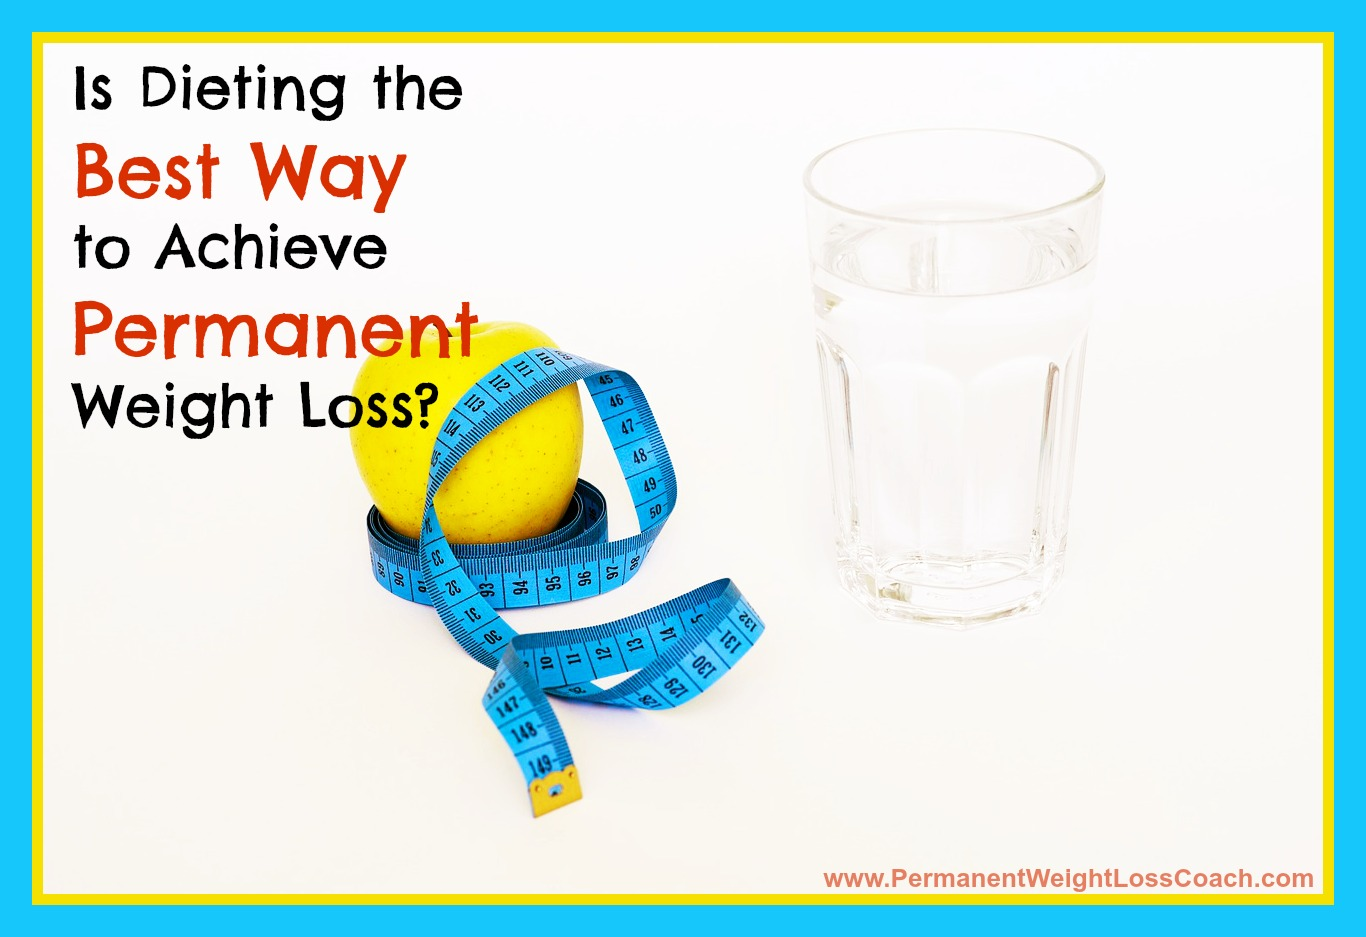 Is Dieting the Best Way to Achieve Permanent Weight Loss?